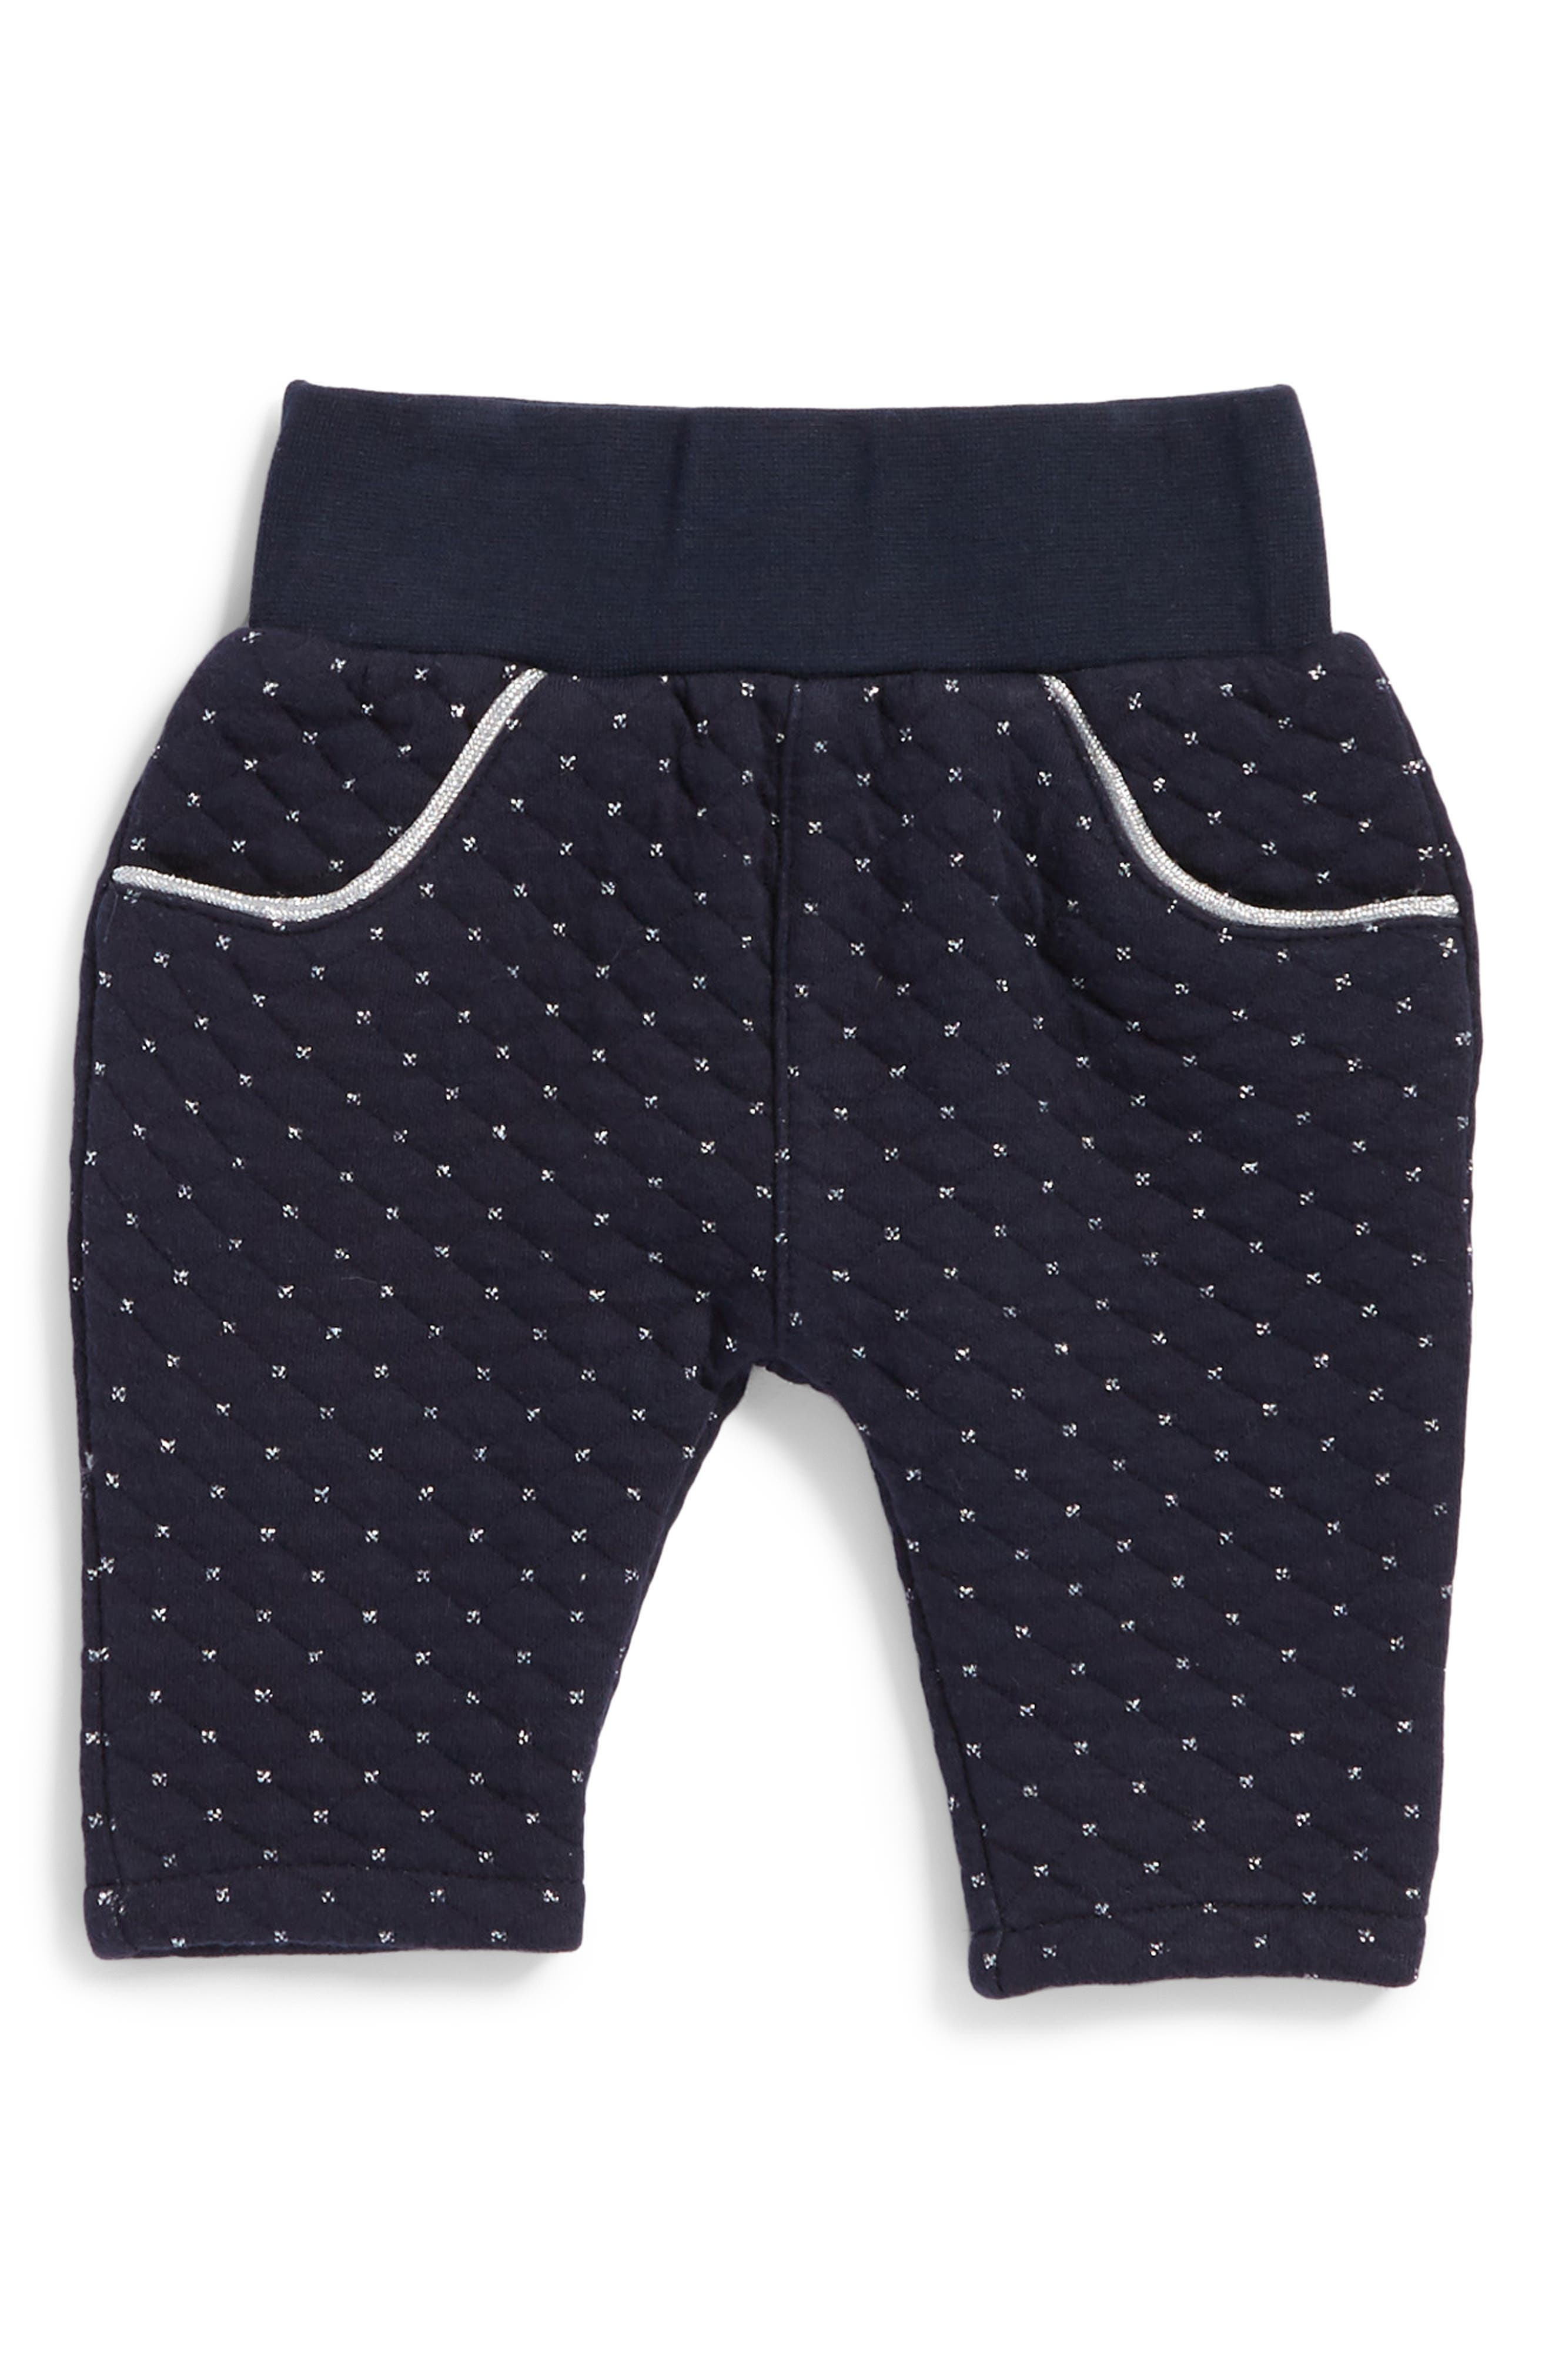 Robeeze<sup>®</sup> Quilted Pants,                         Main,                         color, Navy